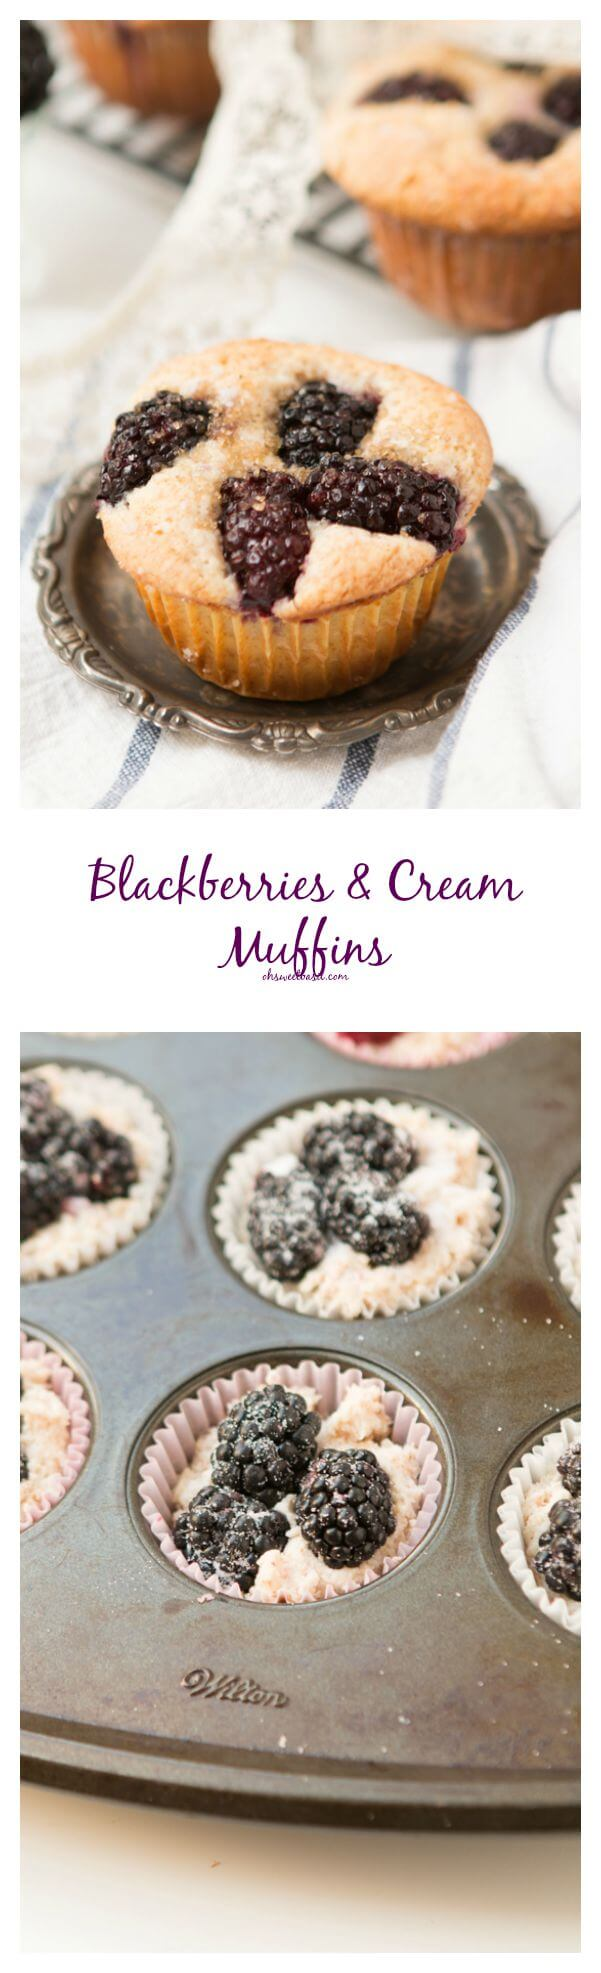 blackberries and cream muffins ohsweetbasil.com